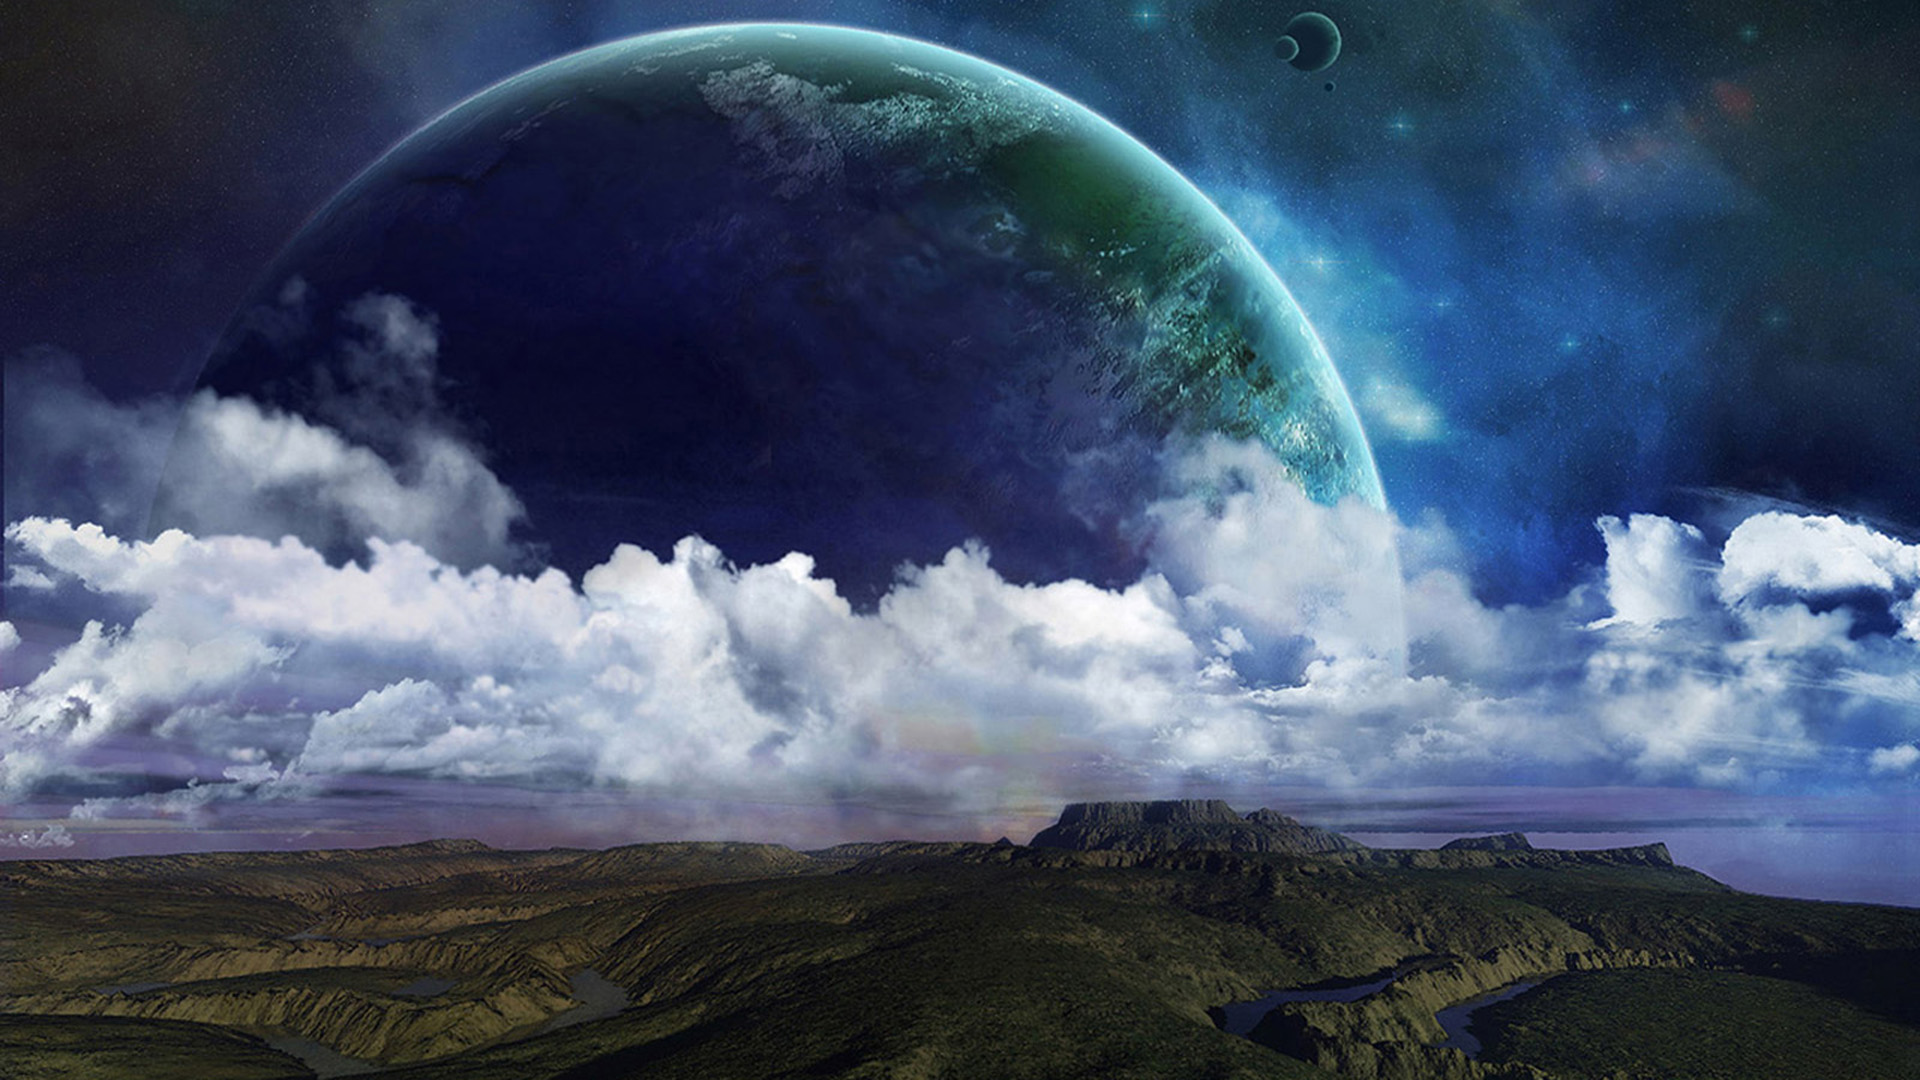 space wallpaper background nature earth wallpapers planet 1920x1080